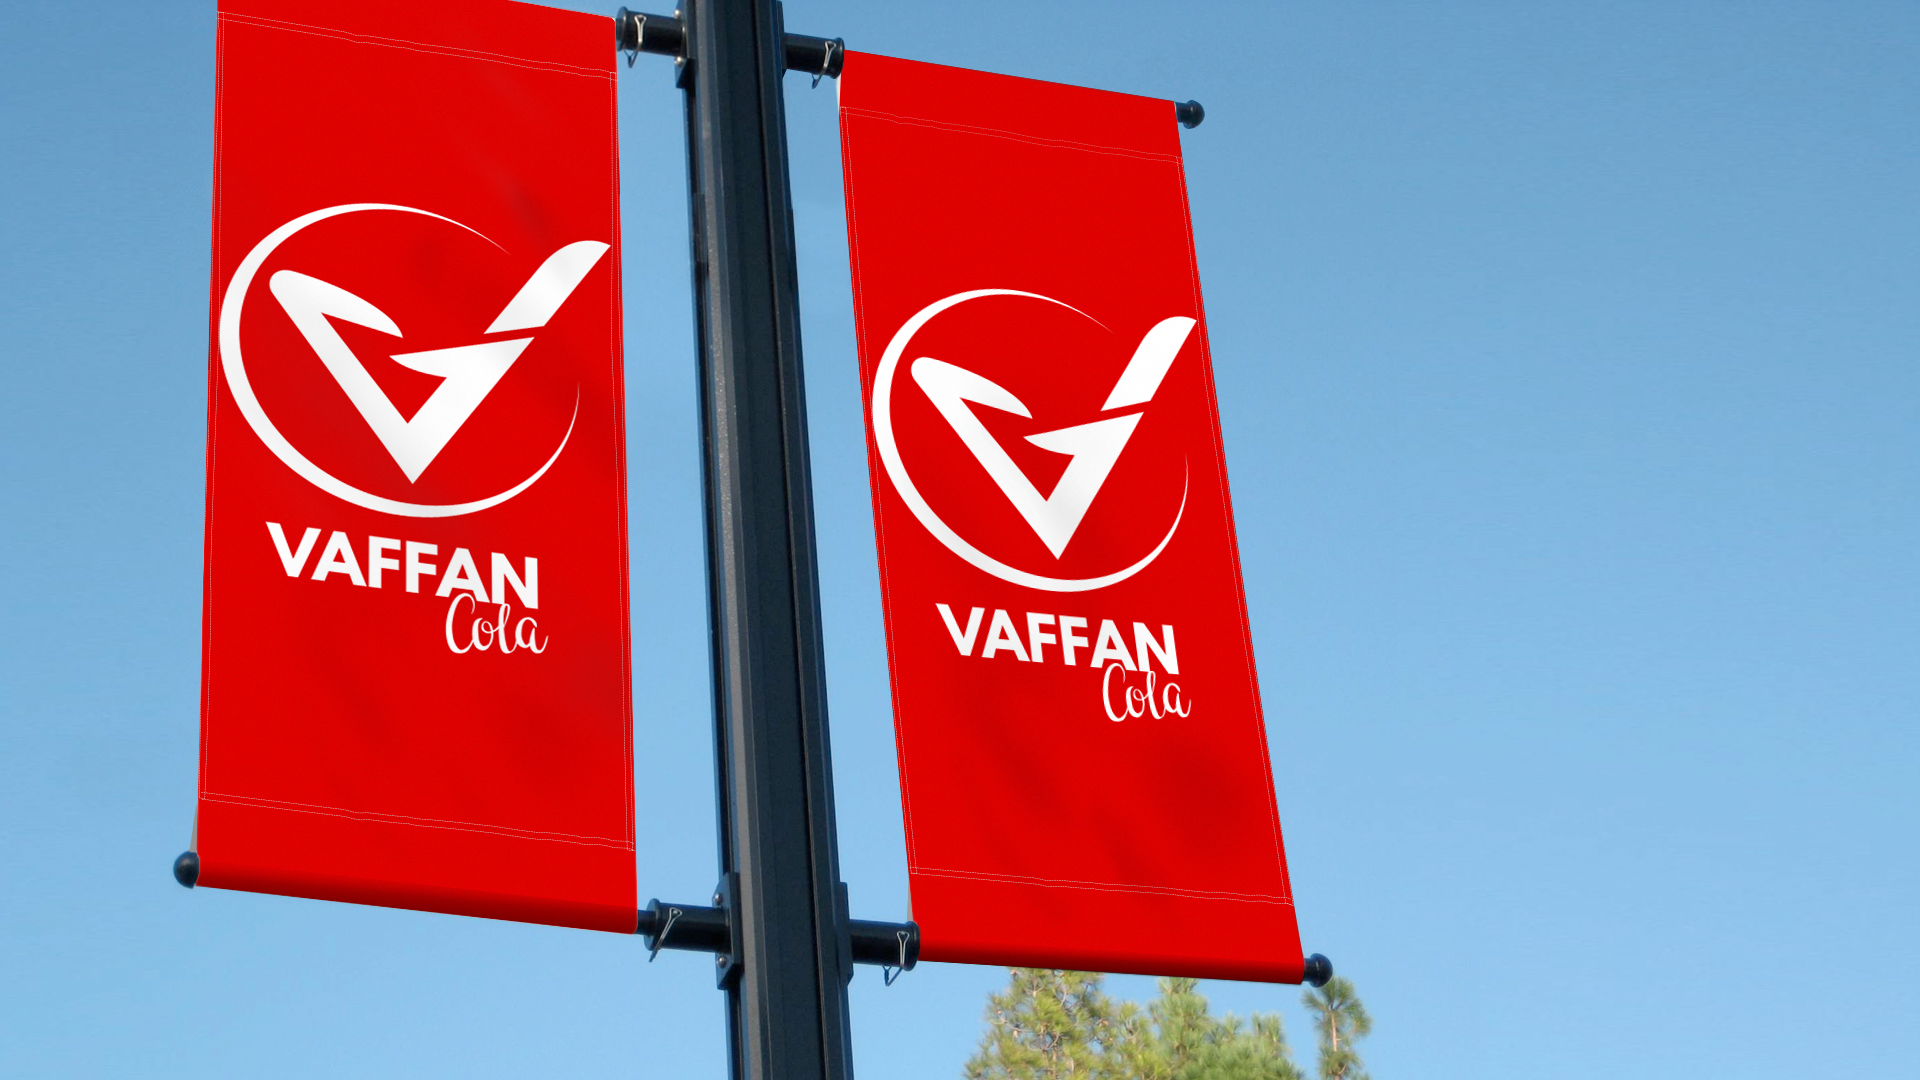 VAFFAN_Brand application